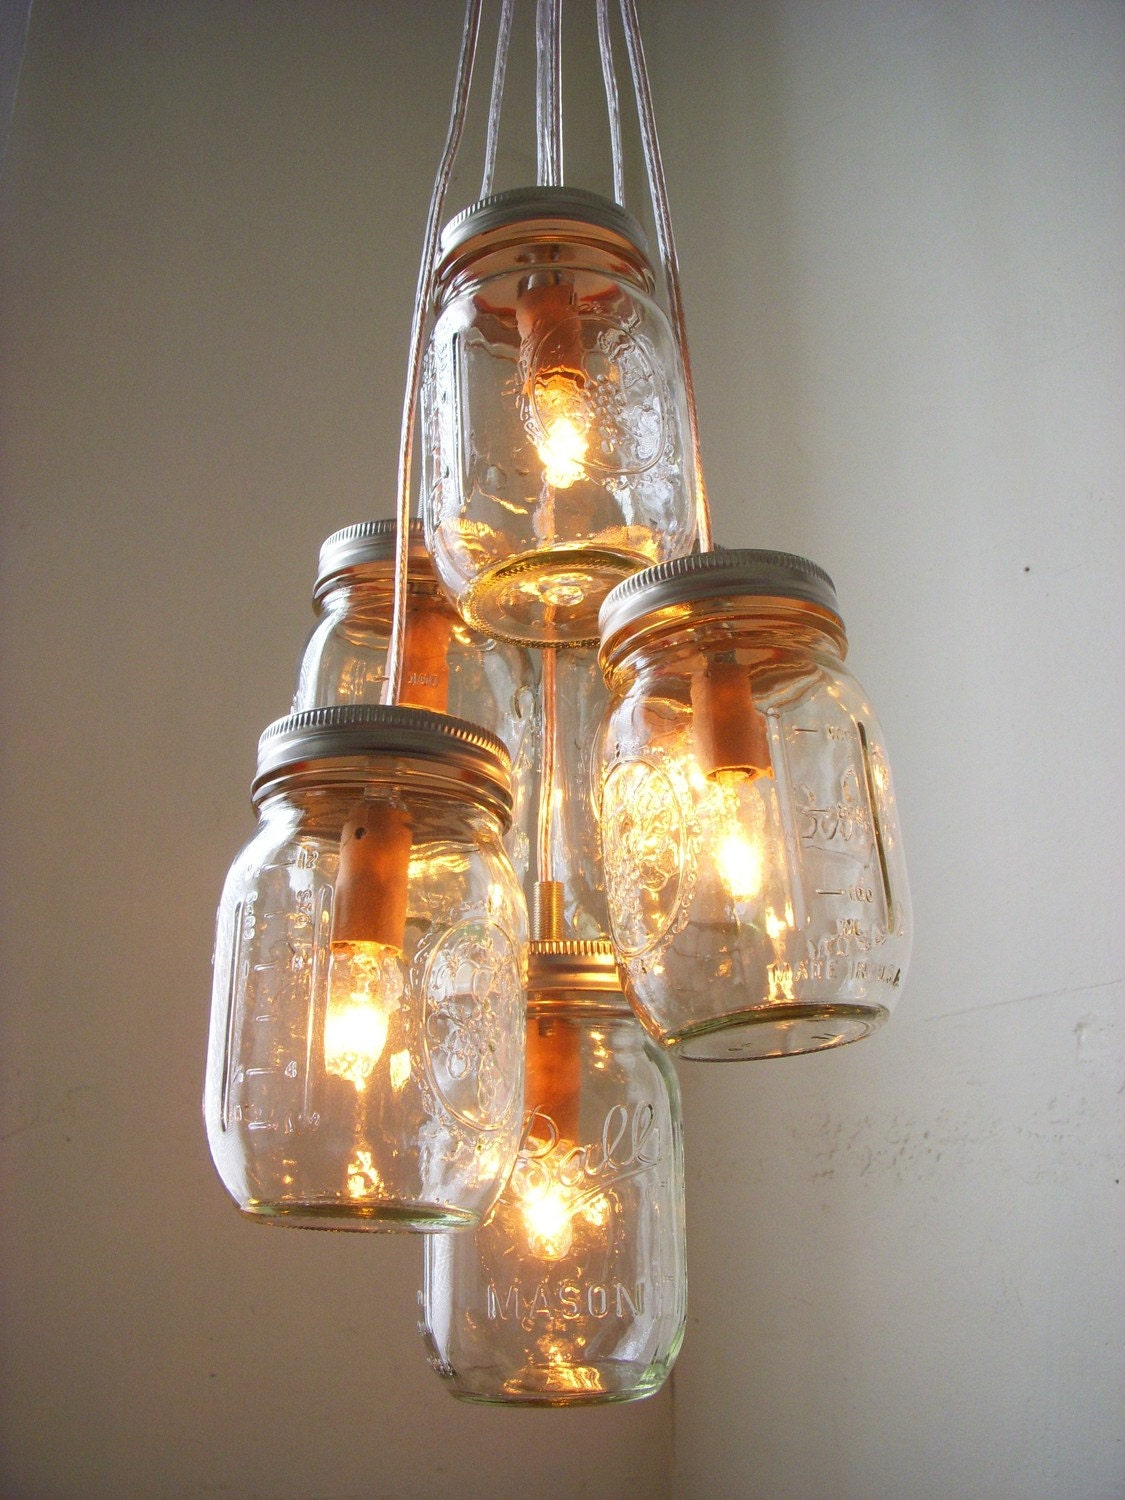 Mason jar lights christmas lights for Lights for home decor